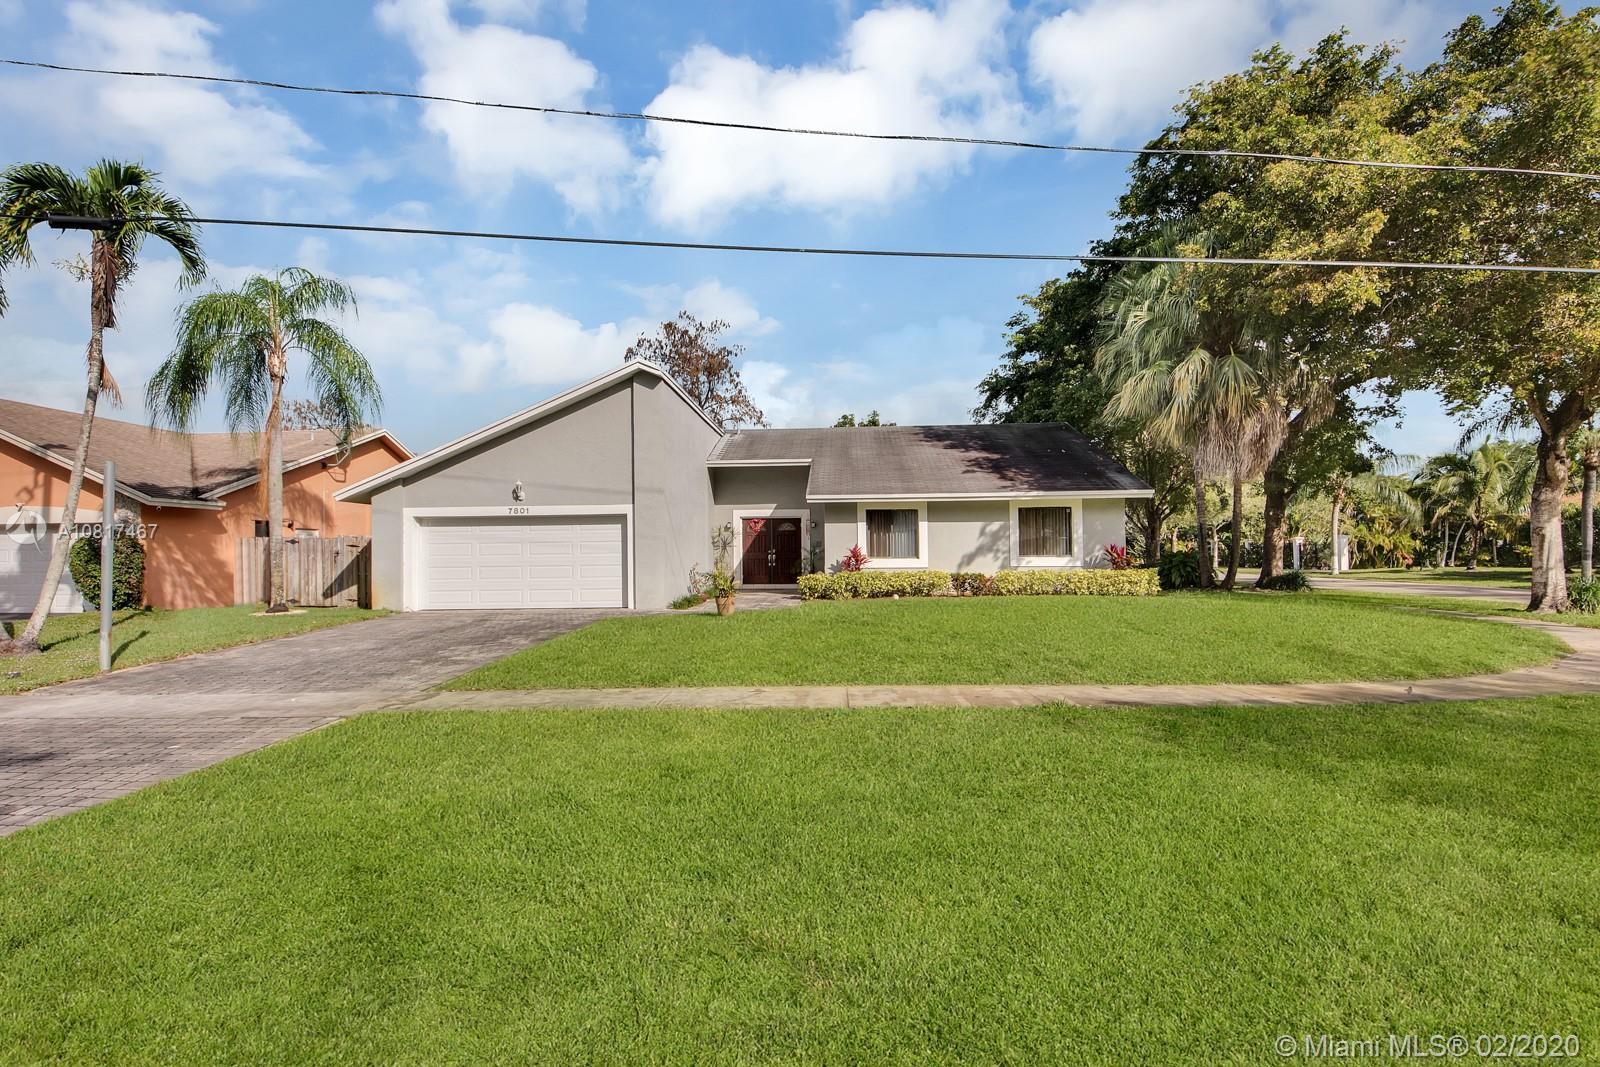 Amazing One Story Corner Home 3BR/2BA. Across from beautiful Veterans Park in West Broward. Perfect for families and entertaining. Great split floor plan with an Interior Patio. Large fenced yard with plenty of room for a pool and/or playground. Two car garage. Great Family Area. No HOA fees!